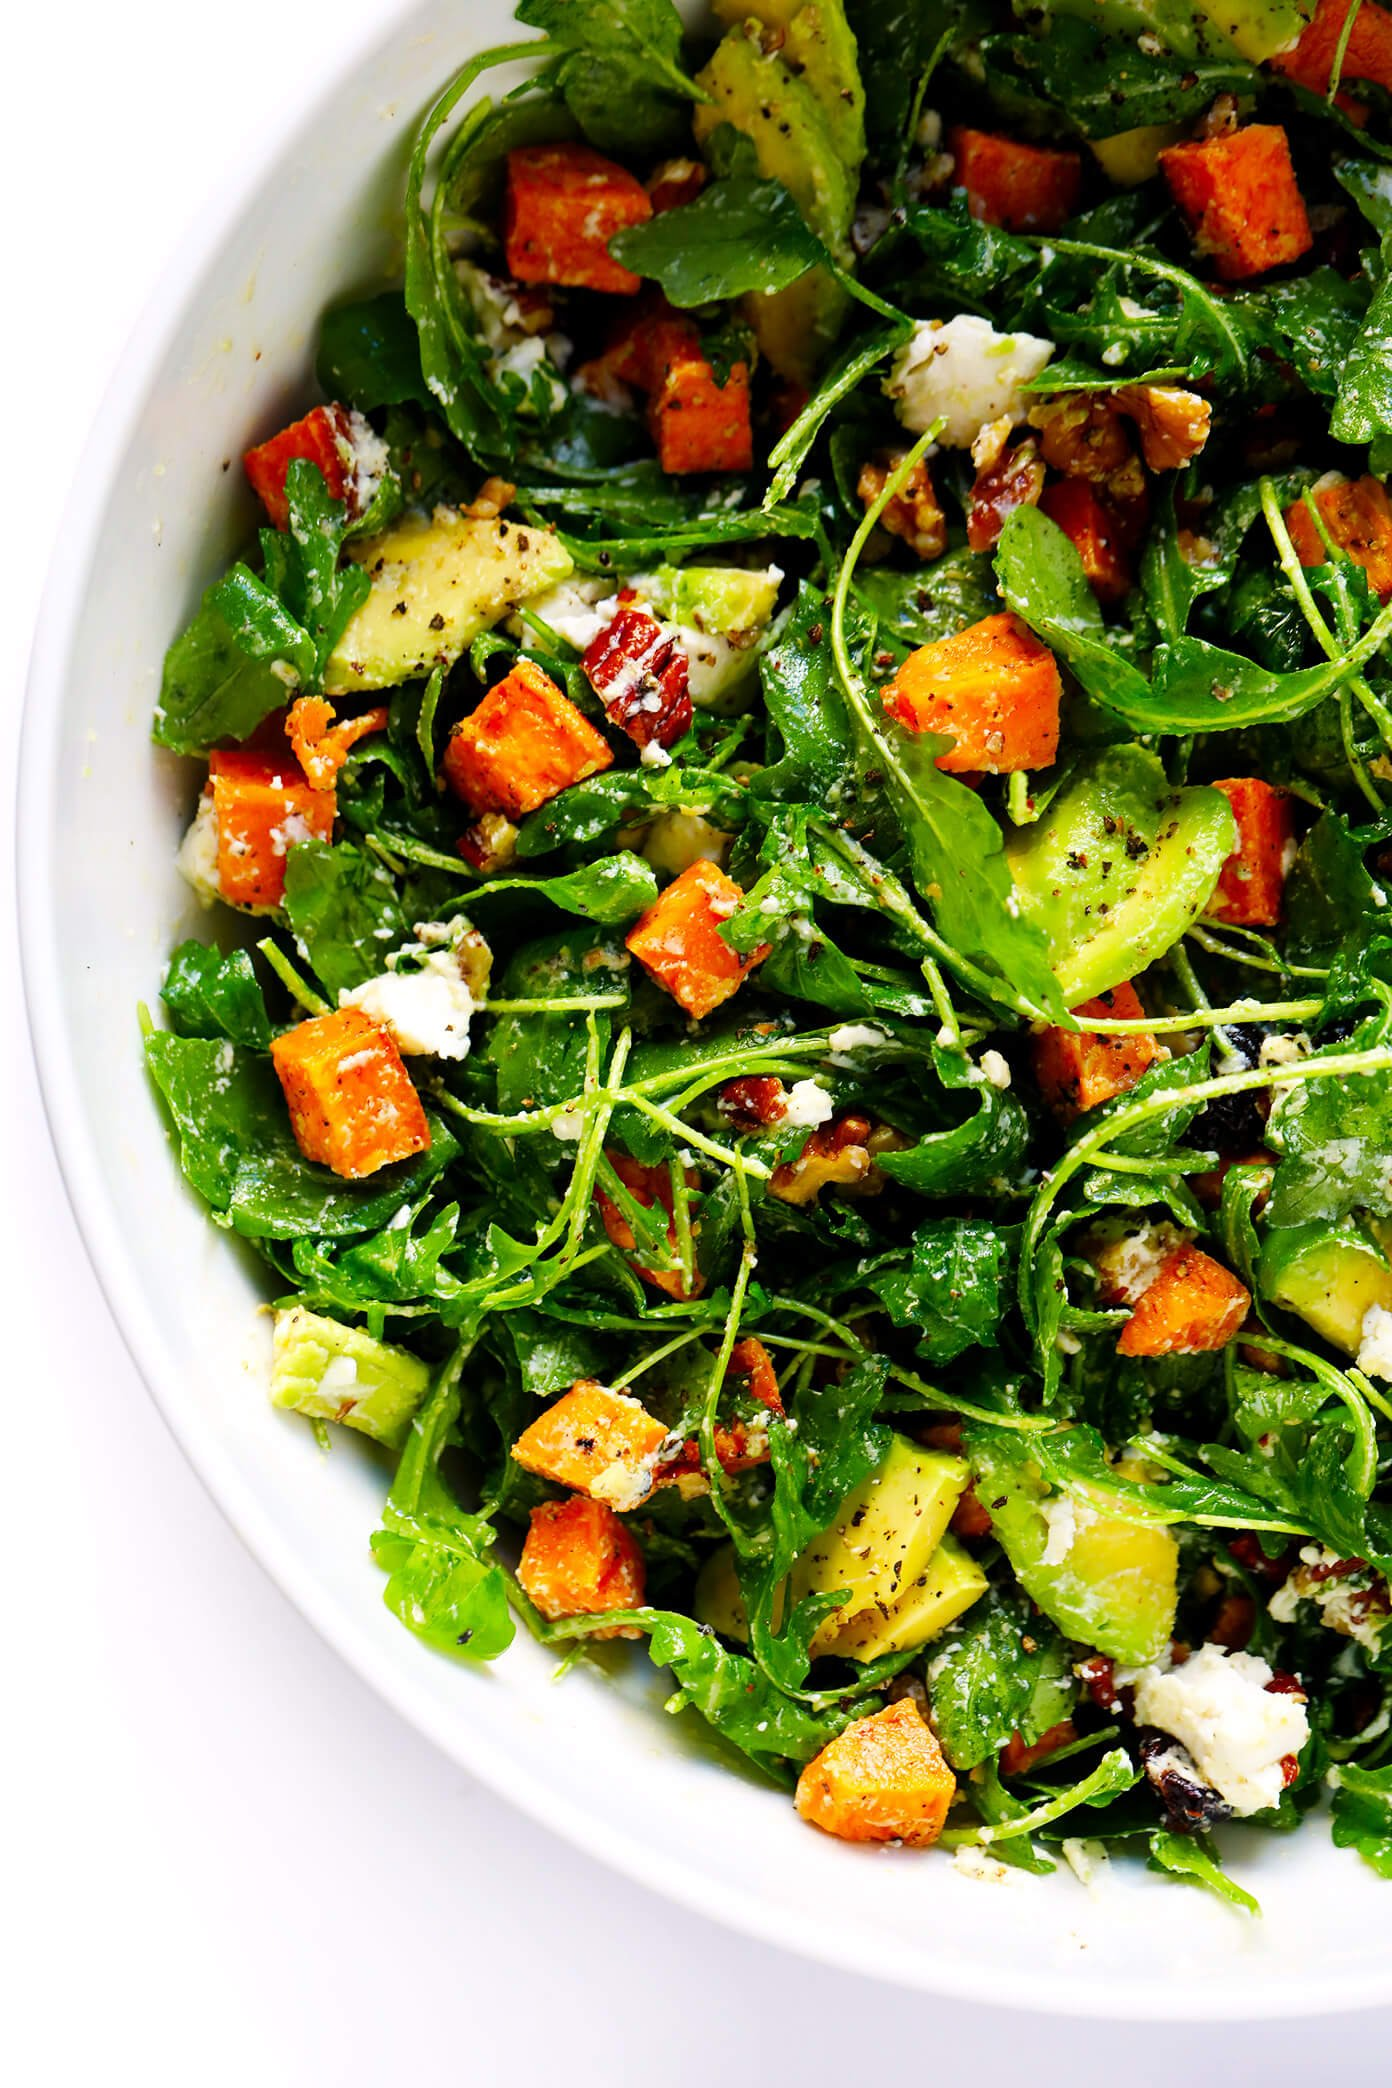 Feel-Good Fall Salad Recipe with Sweet Potatoes and Avocado